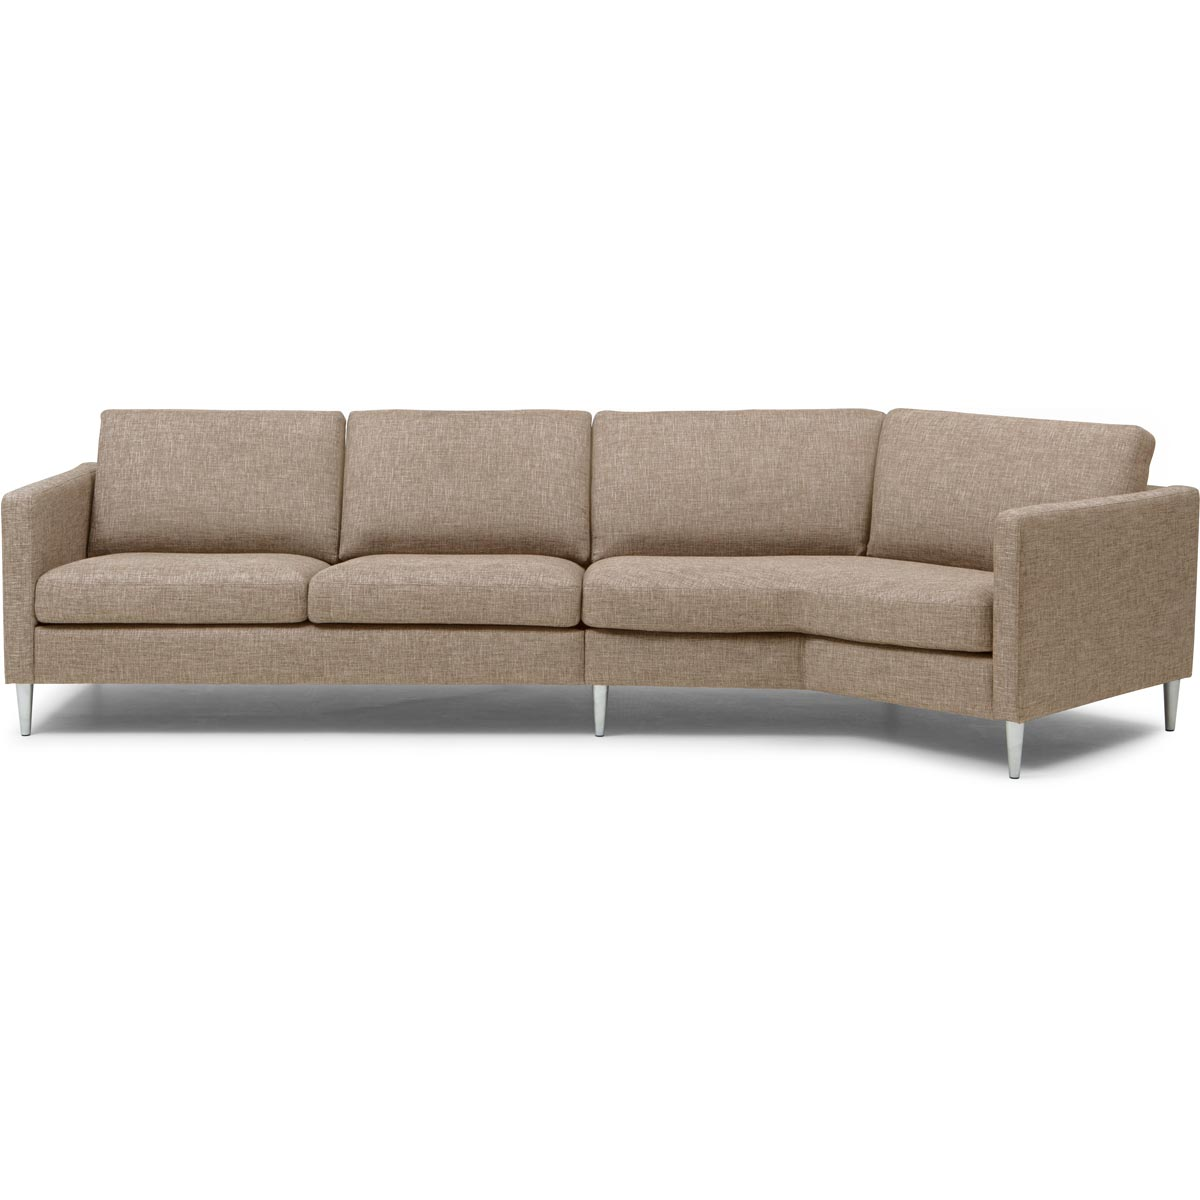 Vaddo-soffa-2-sits-S30-Delight-beige